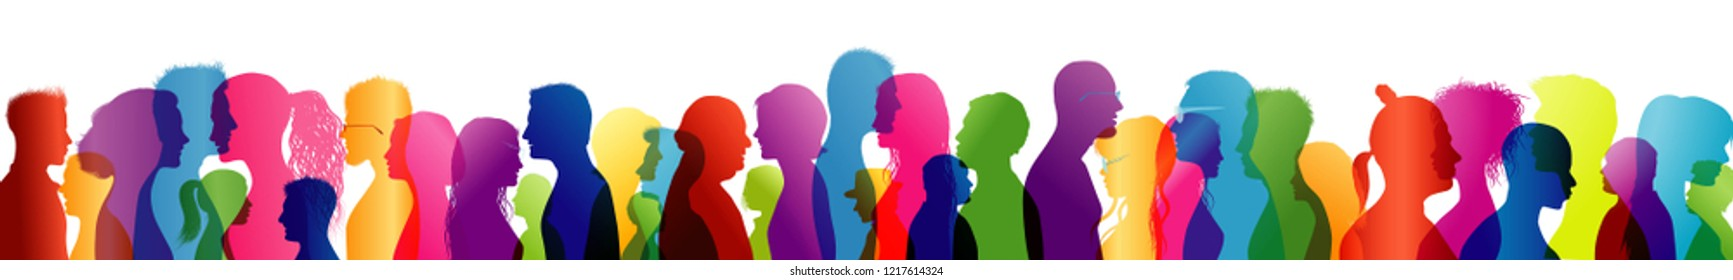 Crowd talking. Group of people talking. To communicate. Speak. Colored silhouette profiles